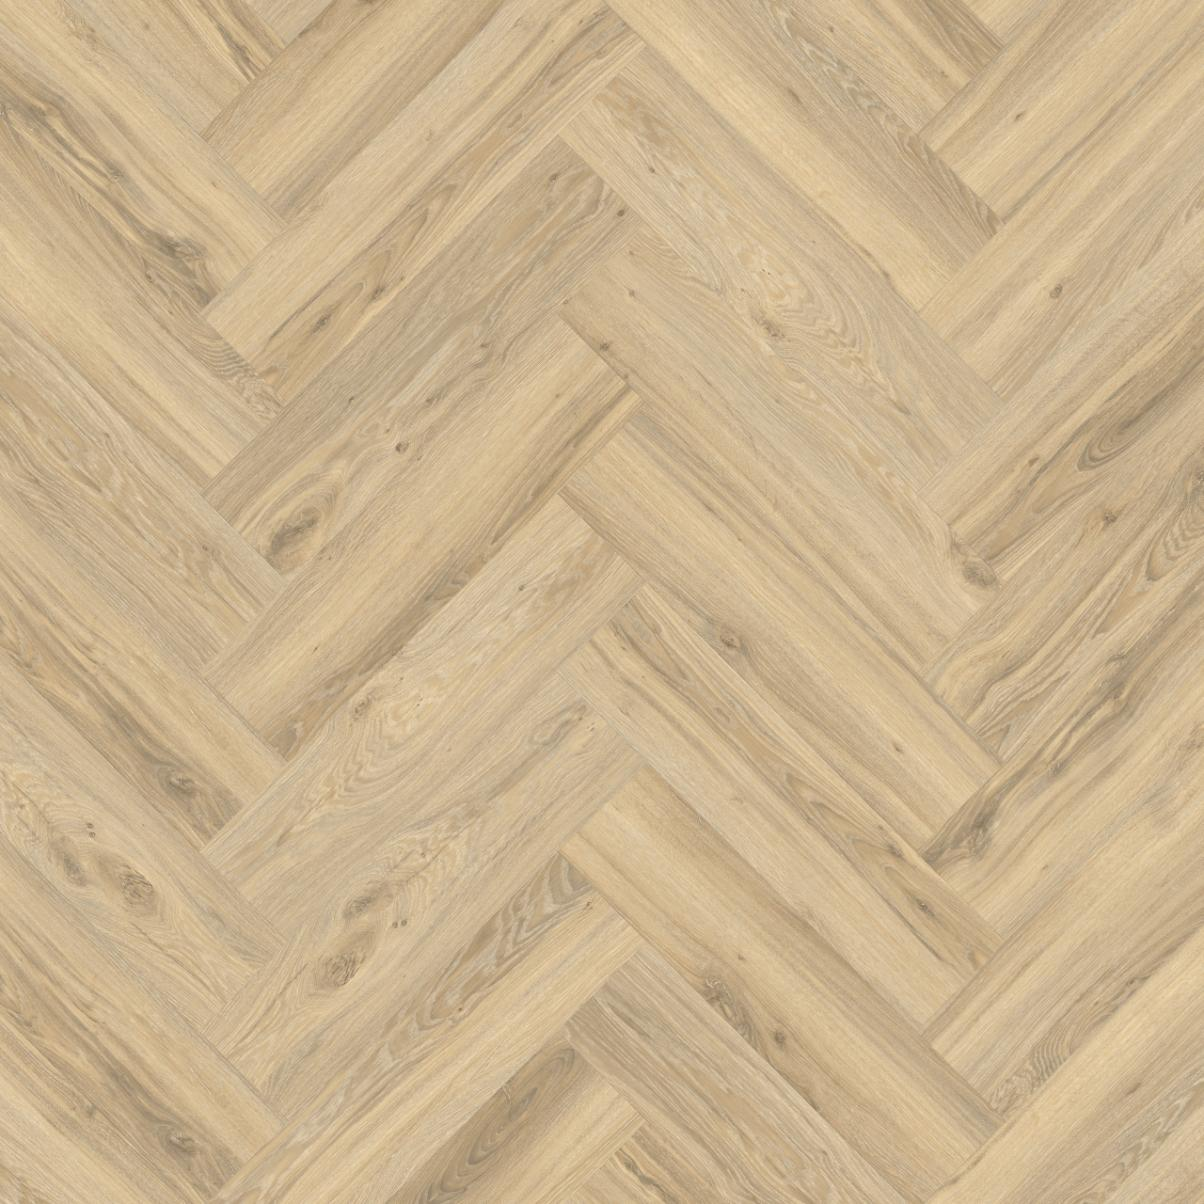 ПВХ  Модулео PARQUETRY SHORT Transform  22220  PL BLACKJACK OAK  (2,5мм-0,55мм)